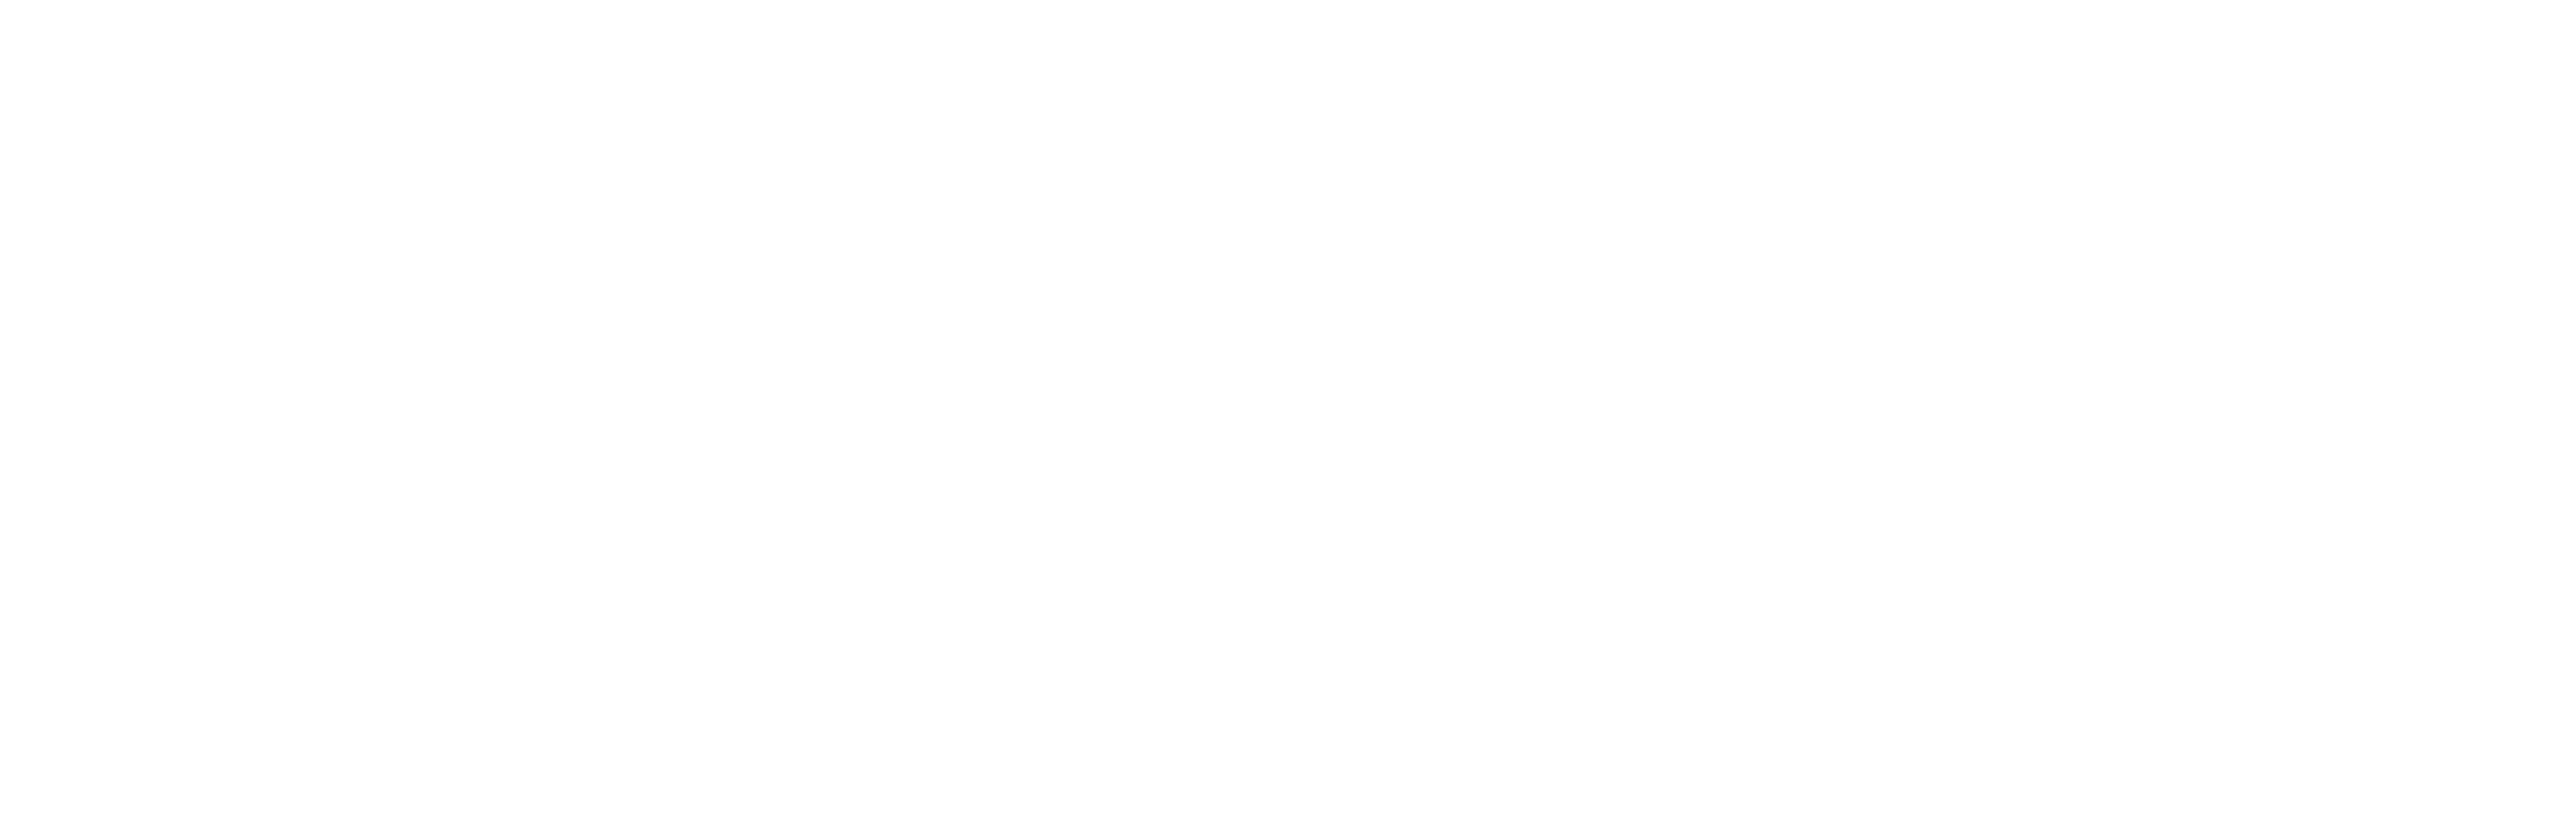 Flower World Florist - Flower Delivery in Vero Beach, FL